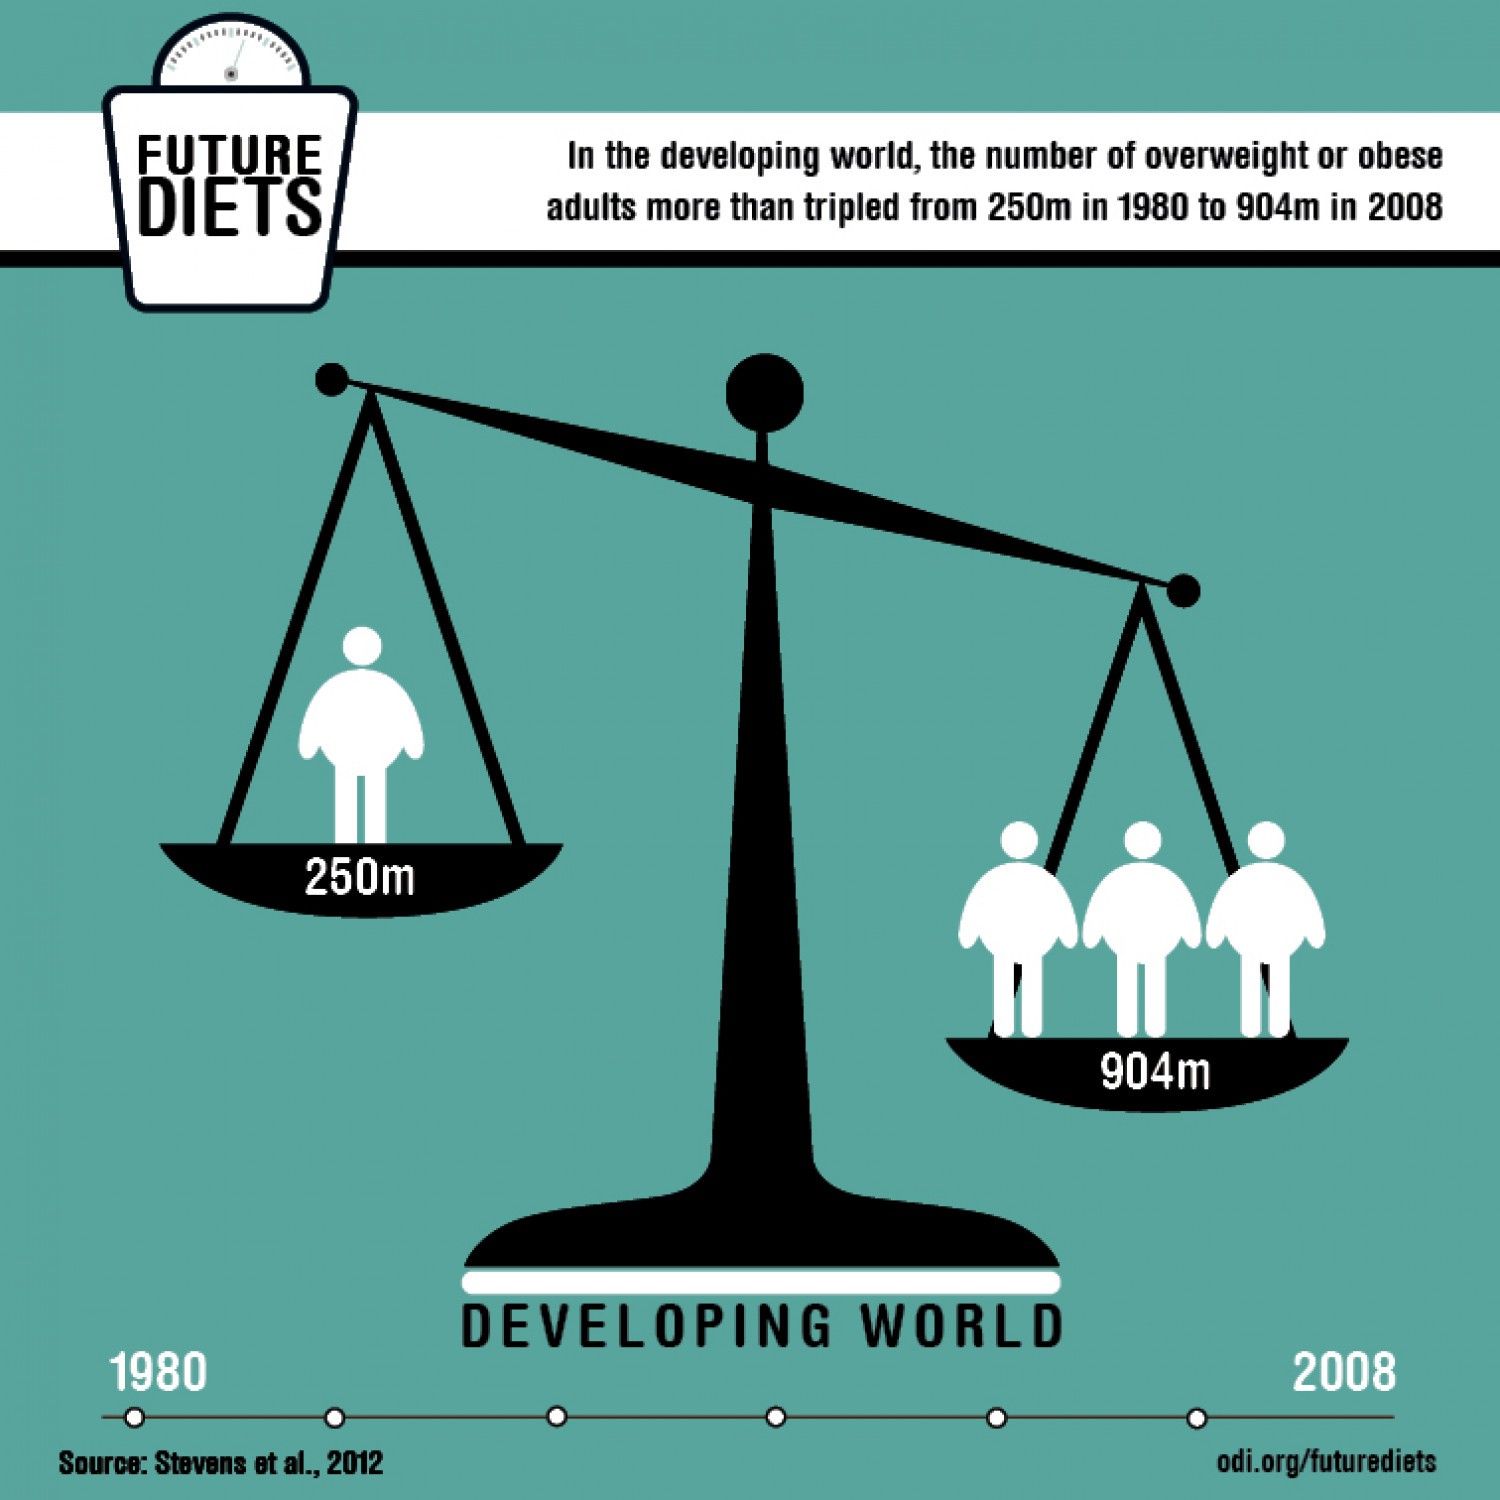 Future diets: Obesity is growing in the developing world Infographic